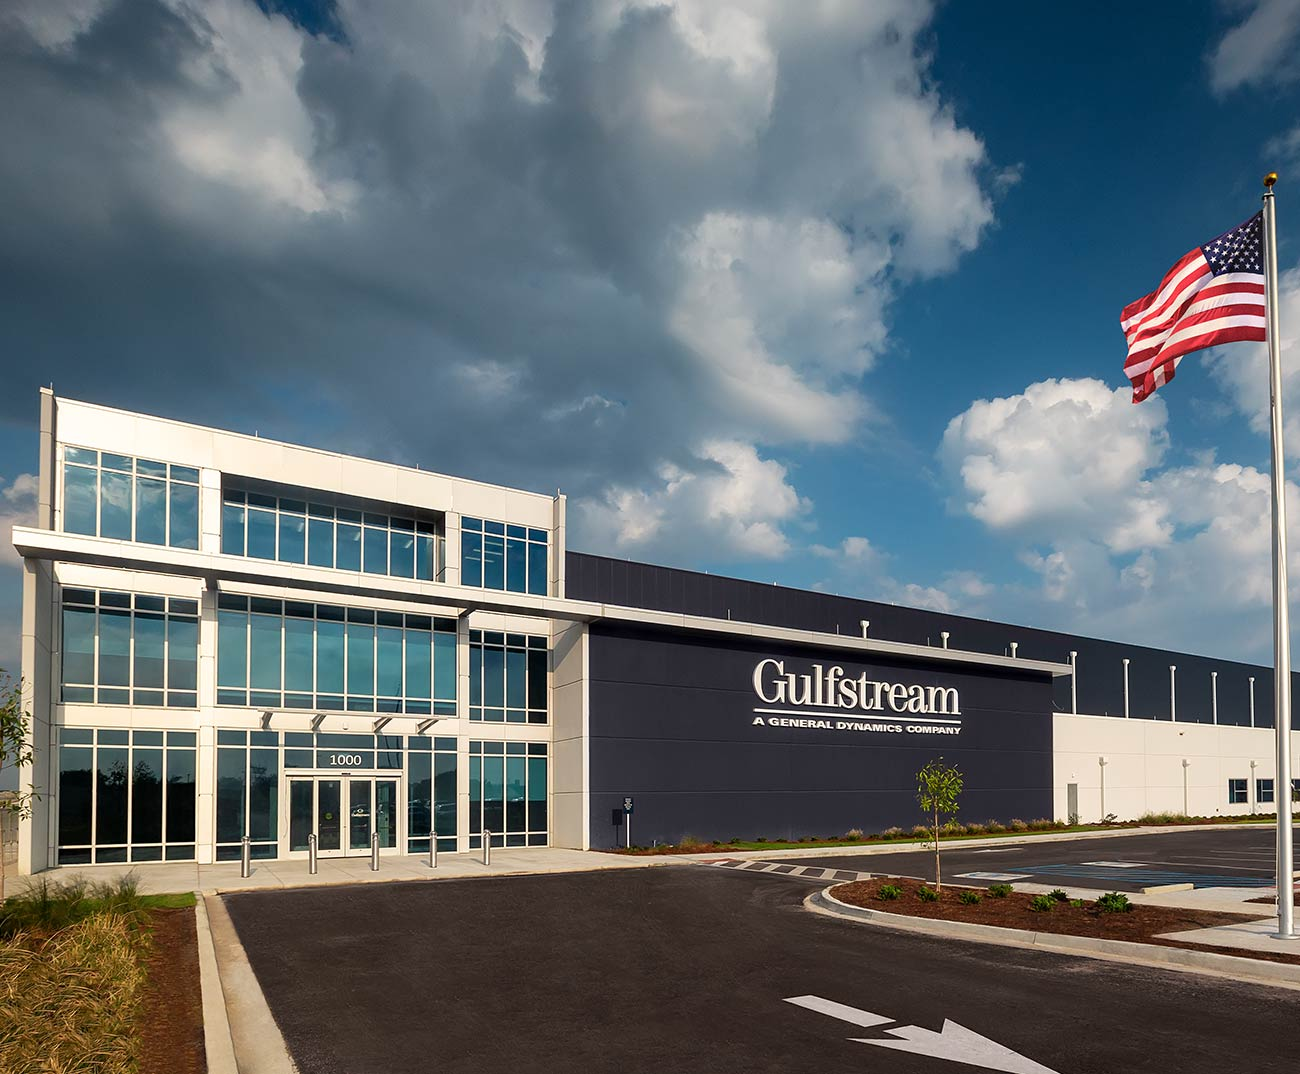 Exterior shot of a Gulfstream building